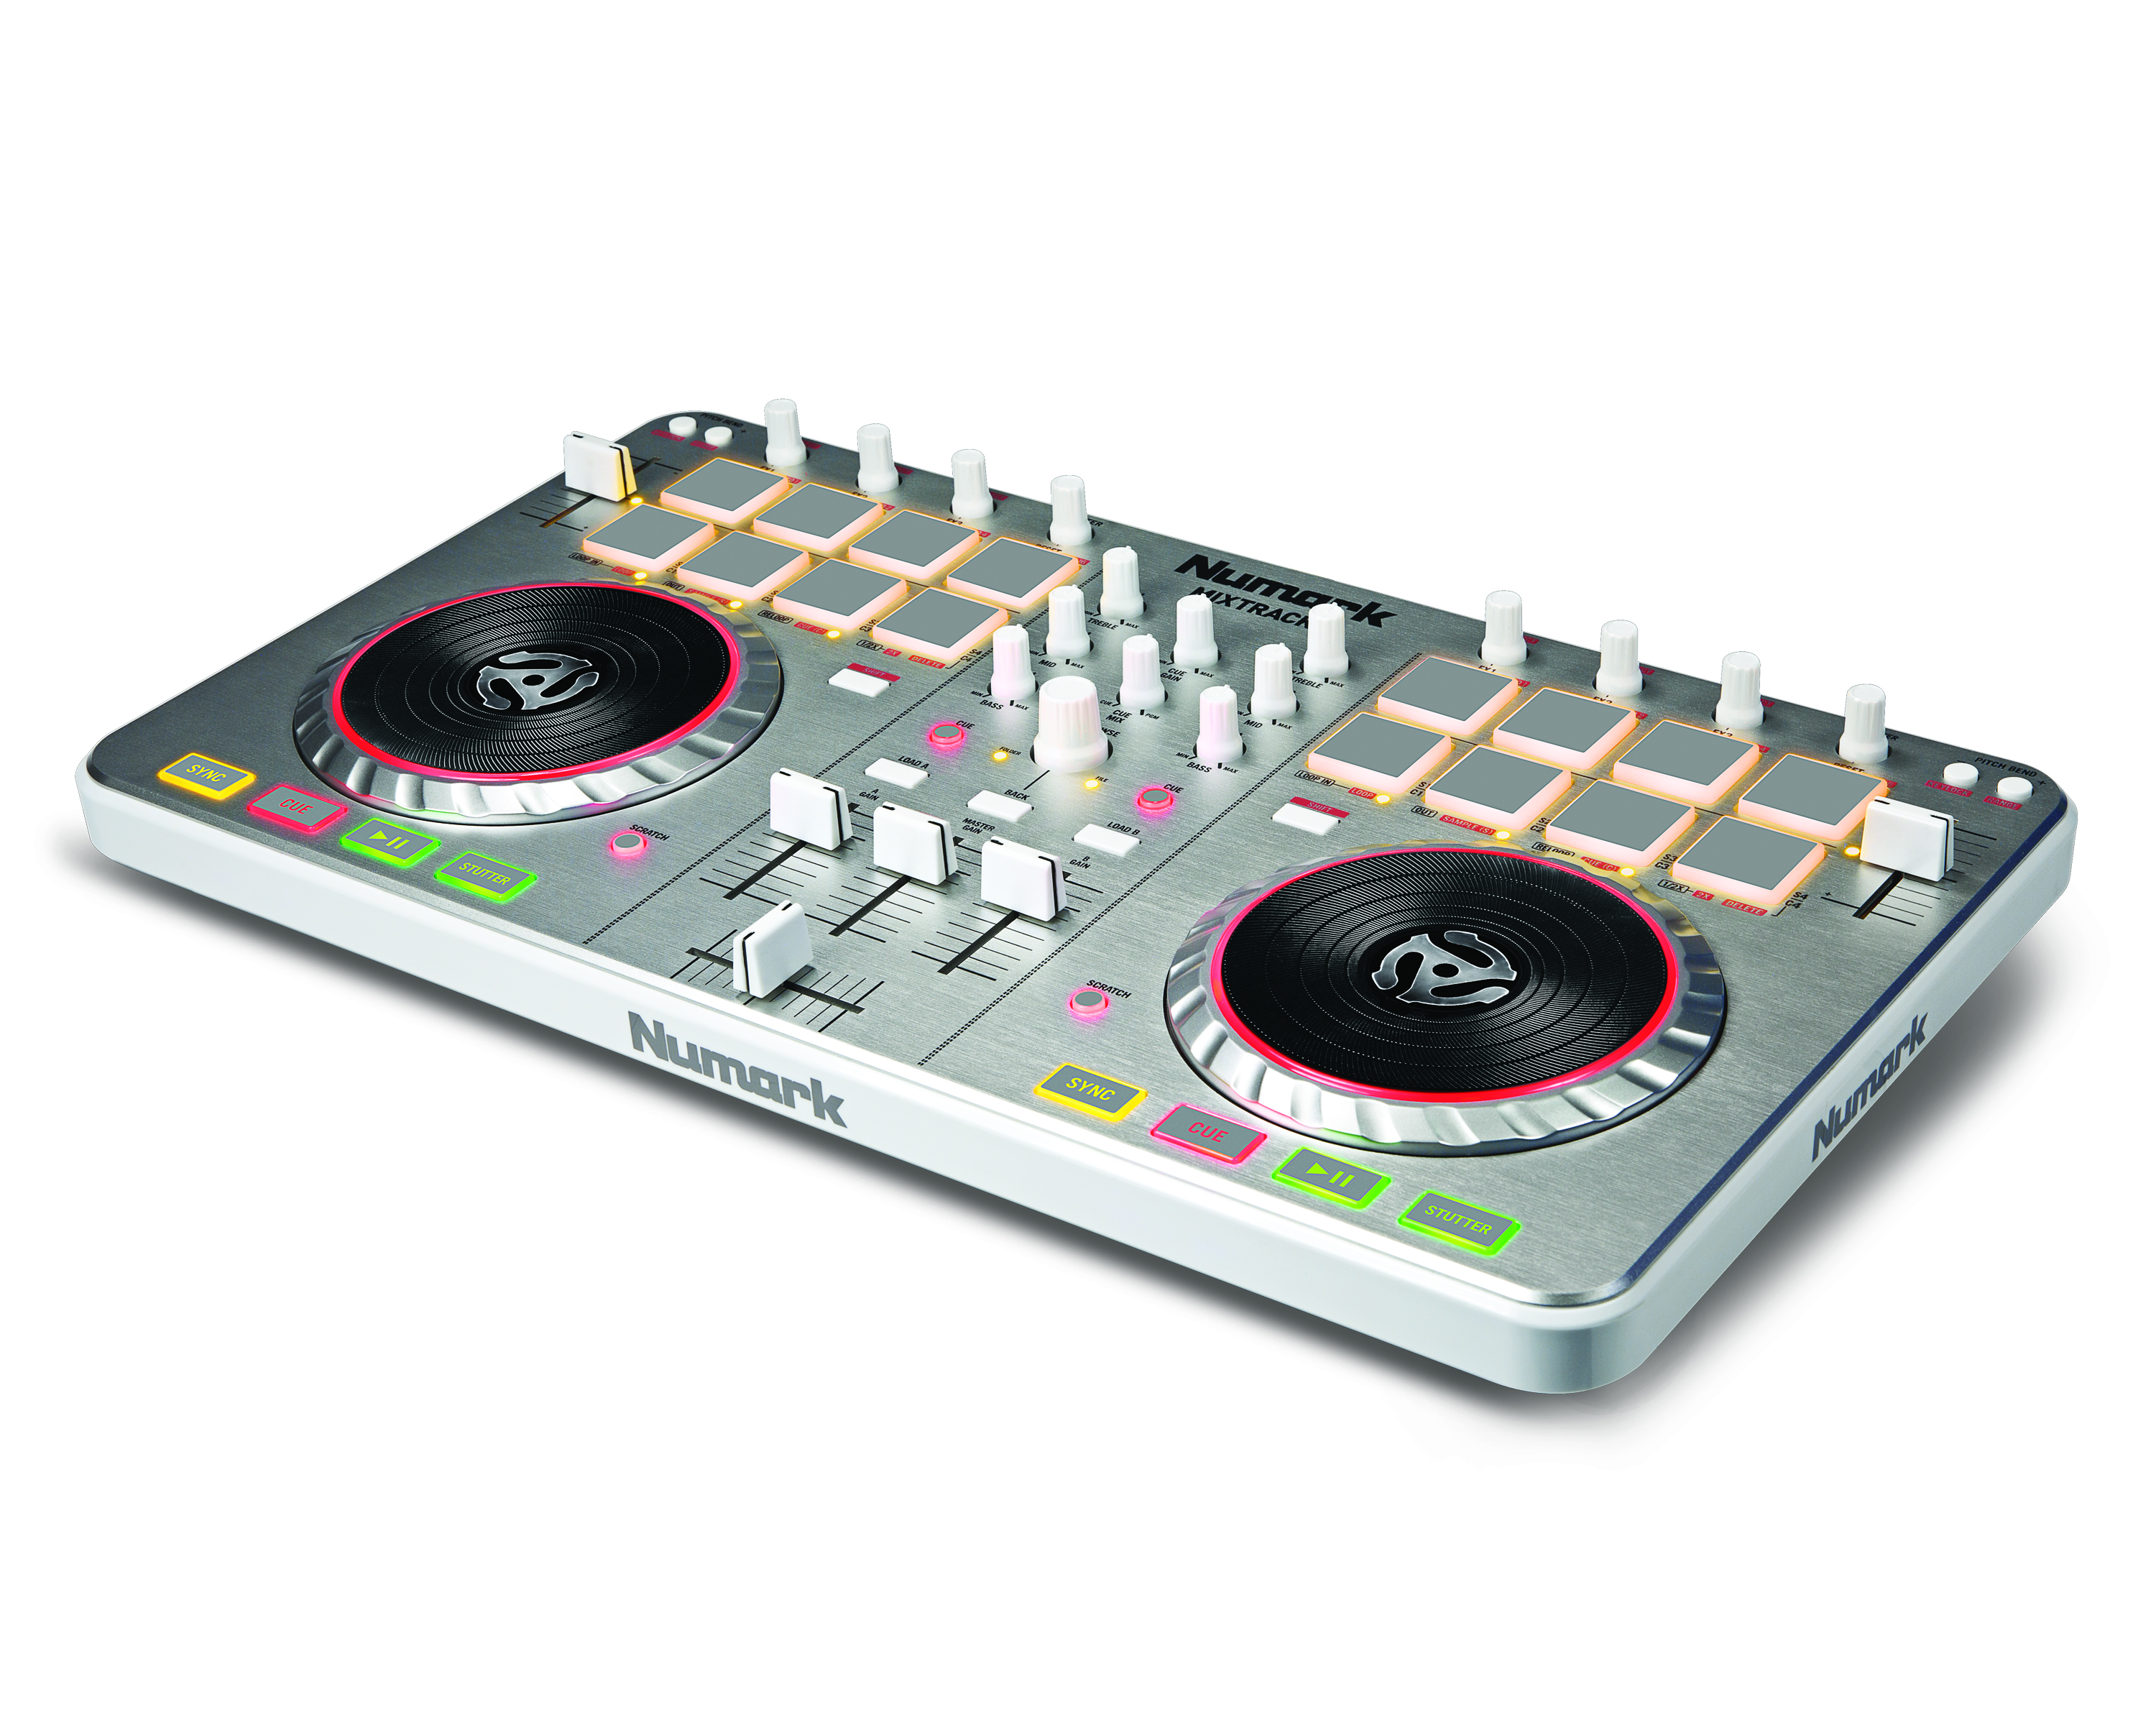 Numark - New Products for 2014